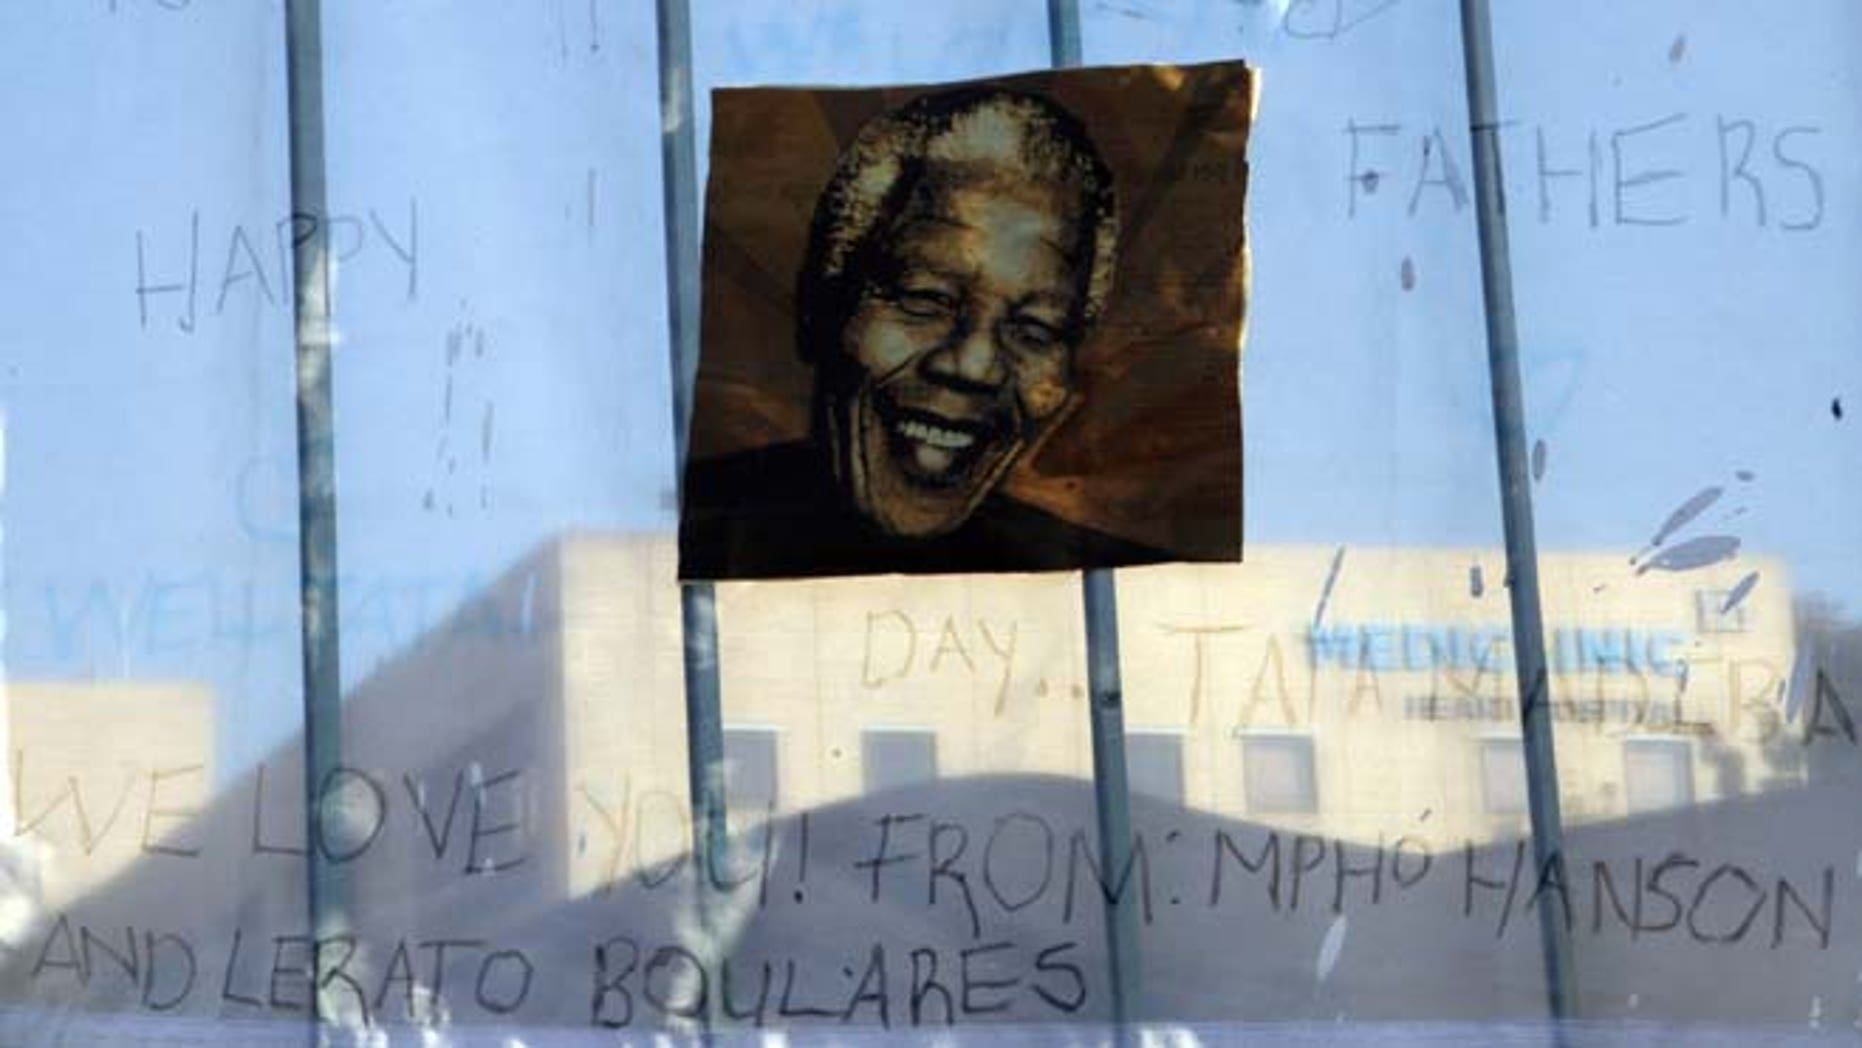 A print of Nelson Mandela and get-well messages hanged outside of the Mediclinic Heart Hospital where former South African President Nelson Mandela is being treated in Pretoria, South Africa Monday, June 24, 2013. Mandela's health has deteriorated and he is now in critical condition, the South African government said.